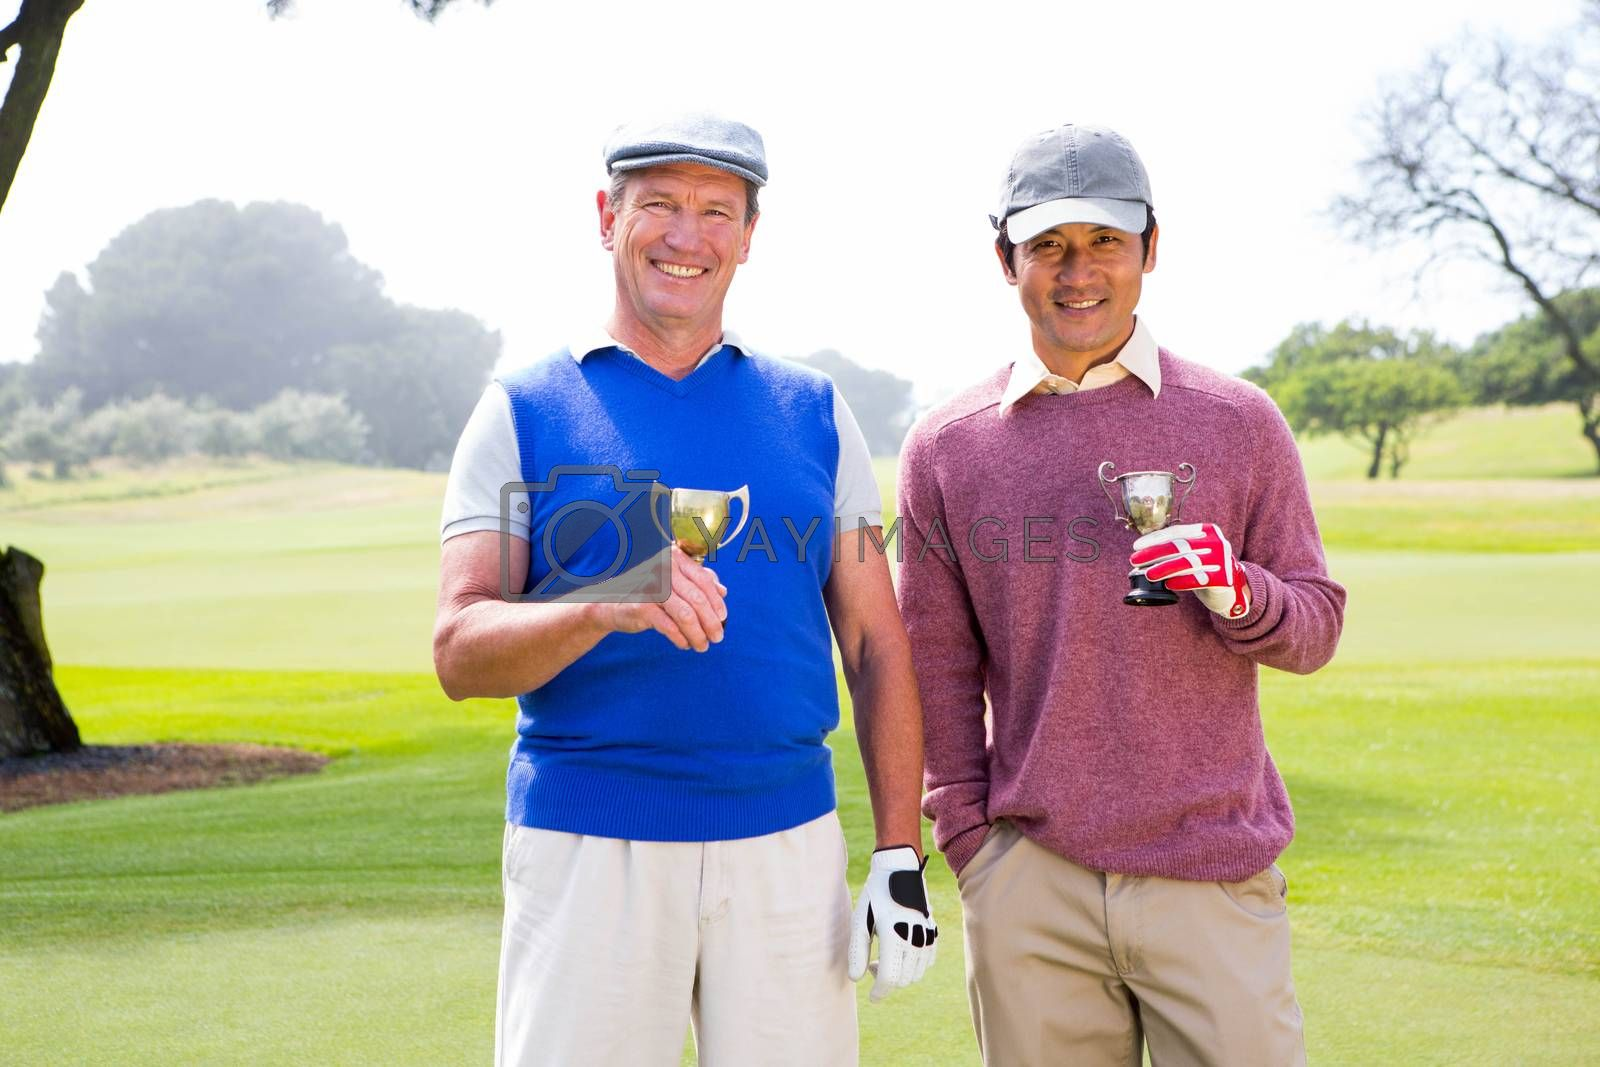 Golfing friends holding cups smiling at camera  by Wavebreakmedia